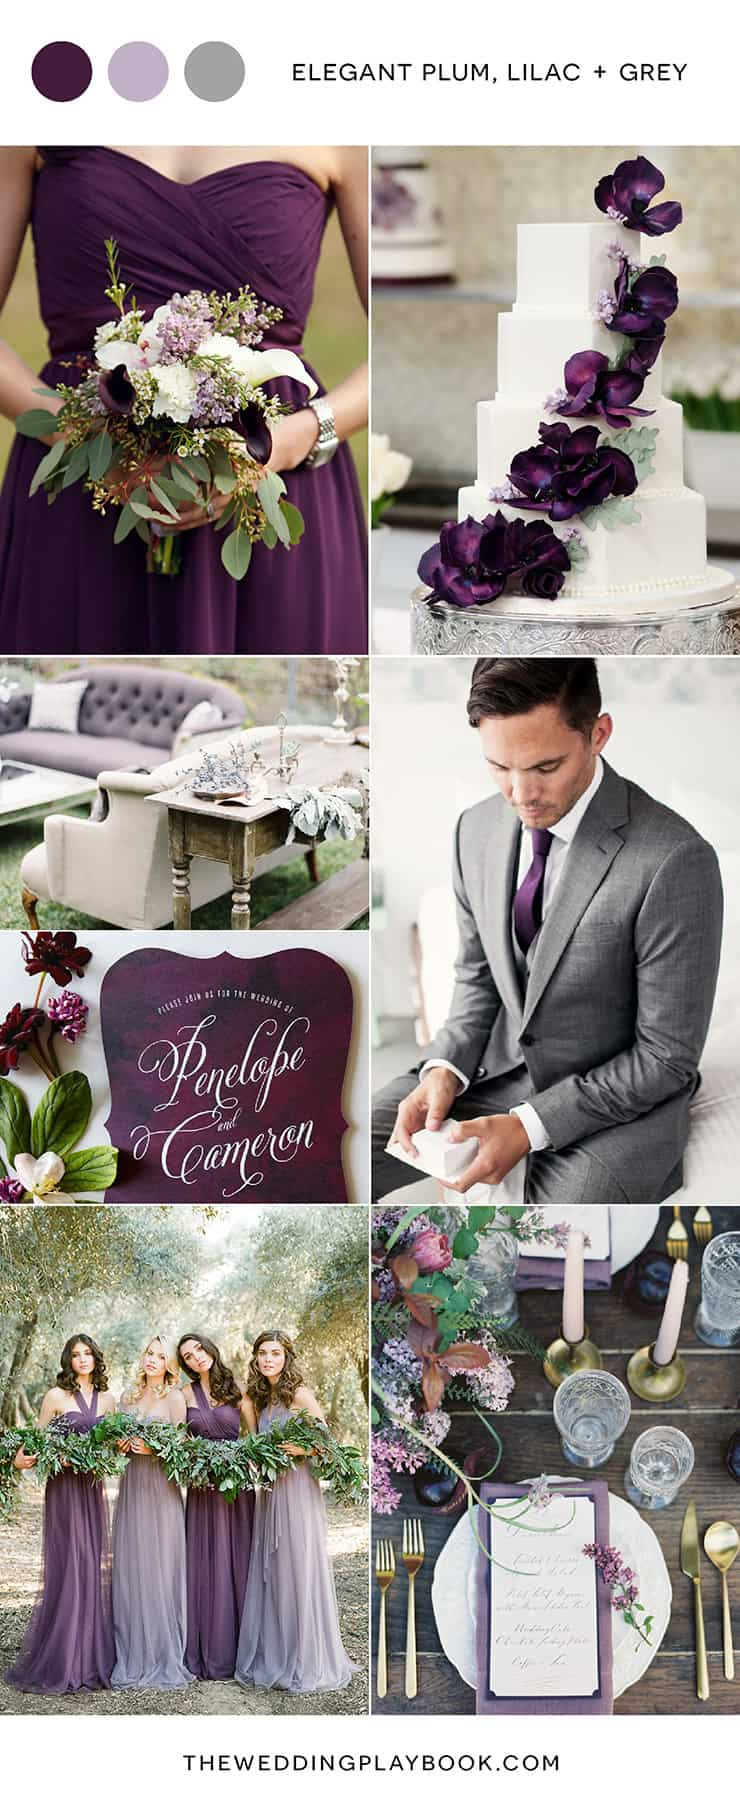 Rich Plum, Lilac and Grey Wedding Colour Inspiration